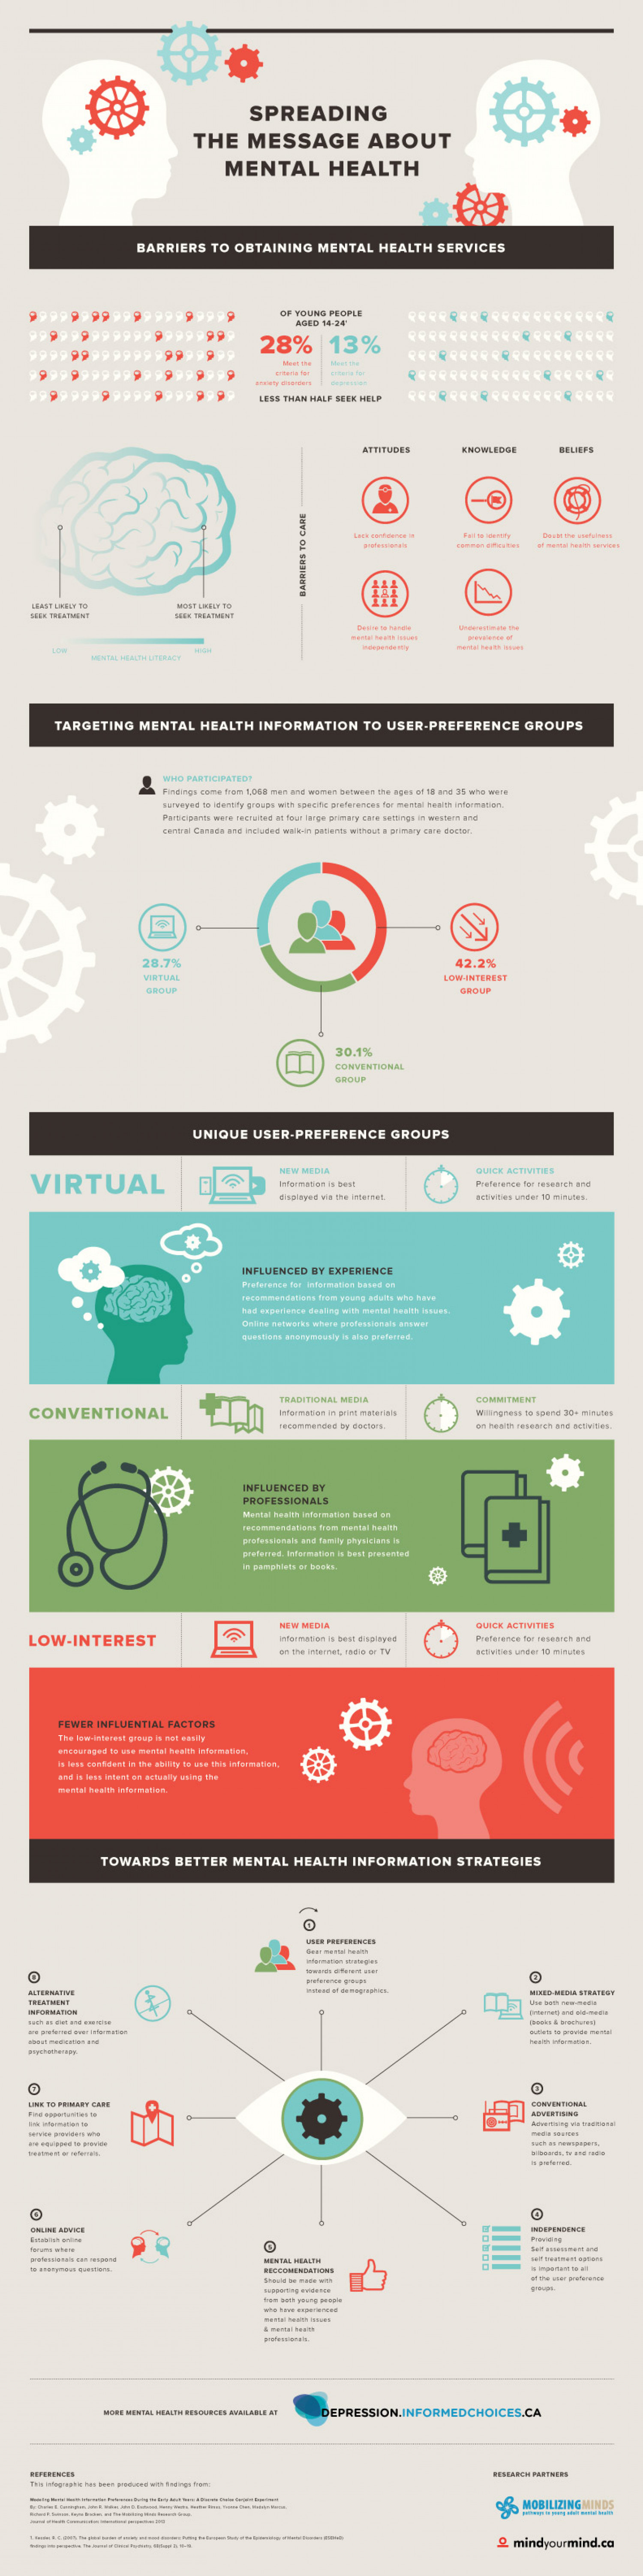 Spreading the Message About Mental Health  Infographic